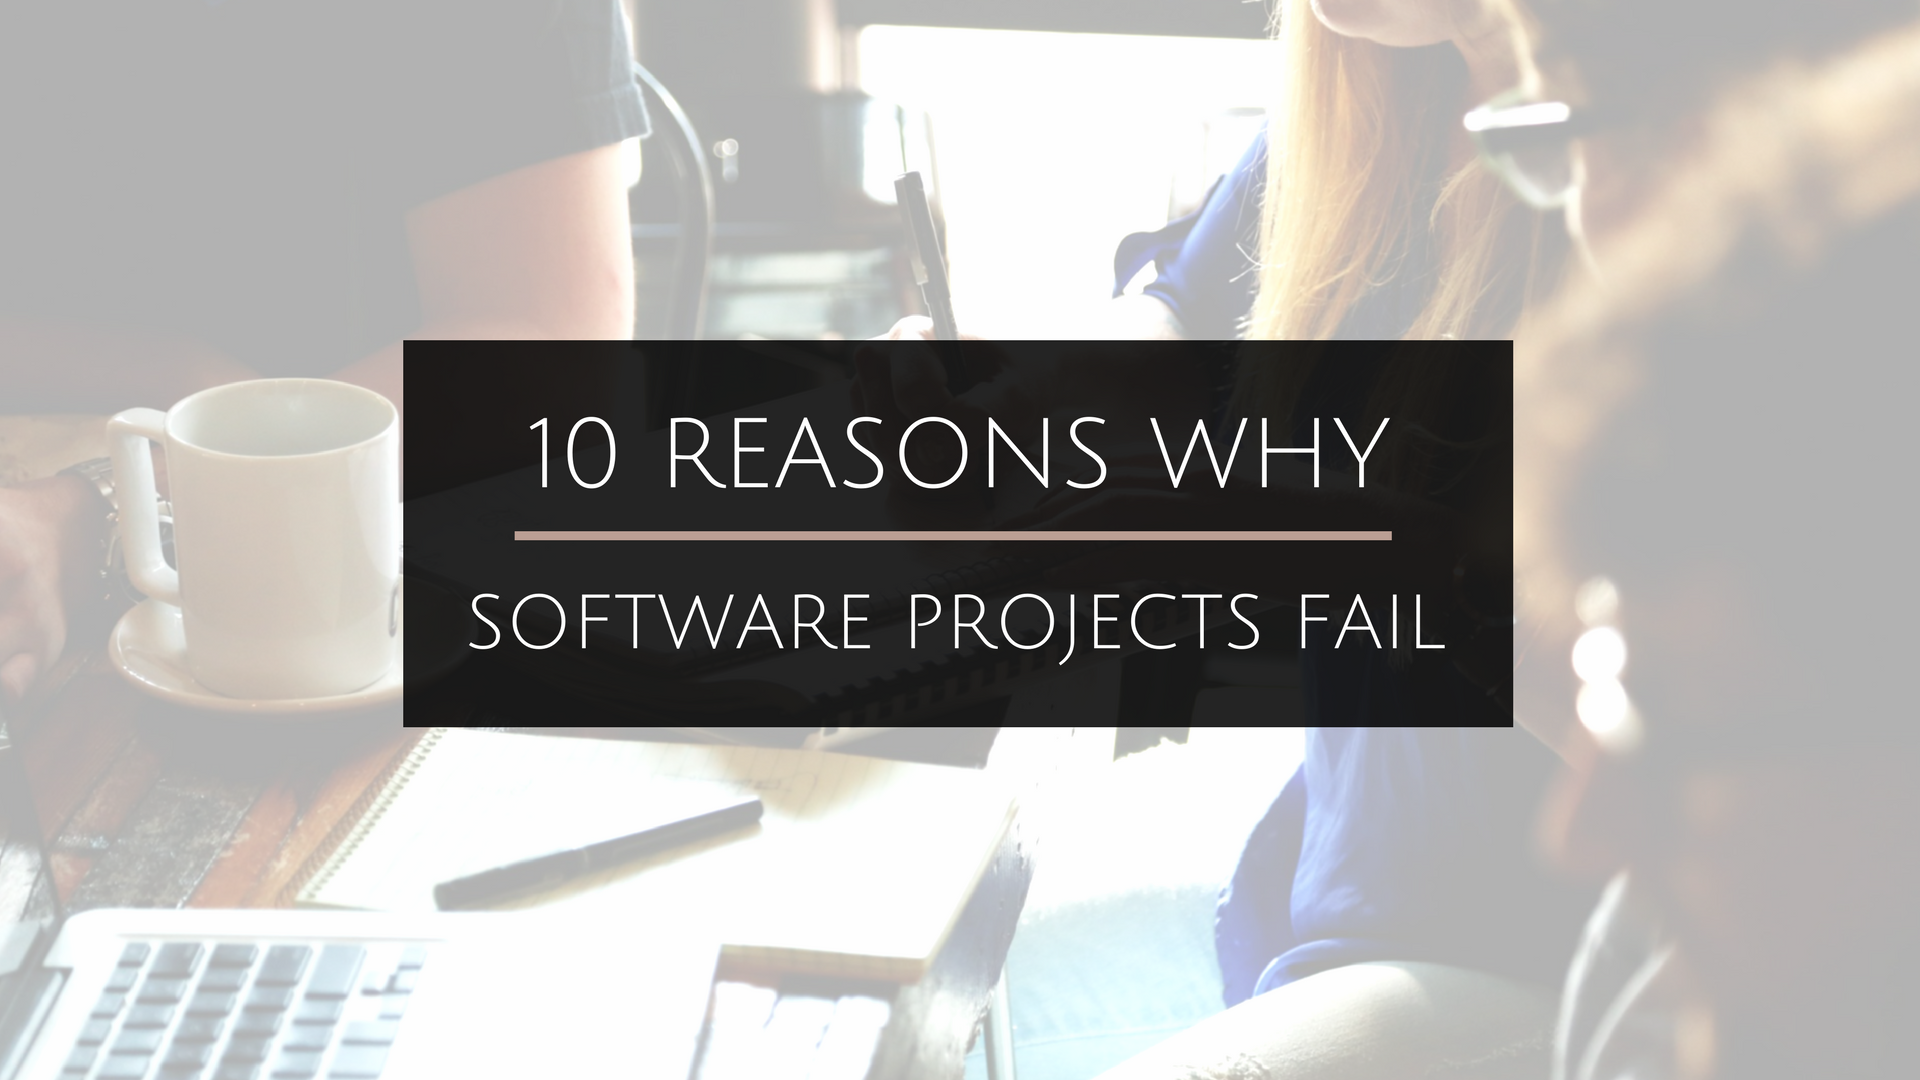 10 Reasons Why Software Projects Fail